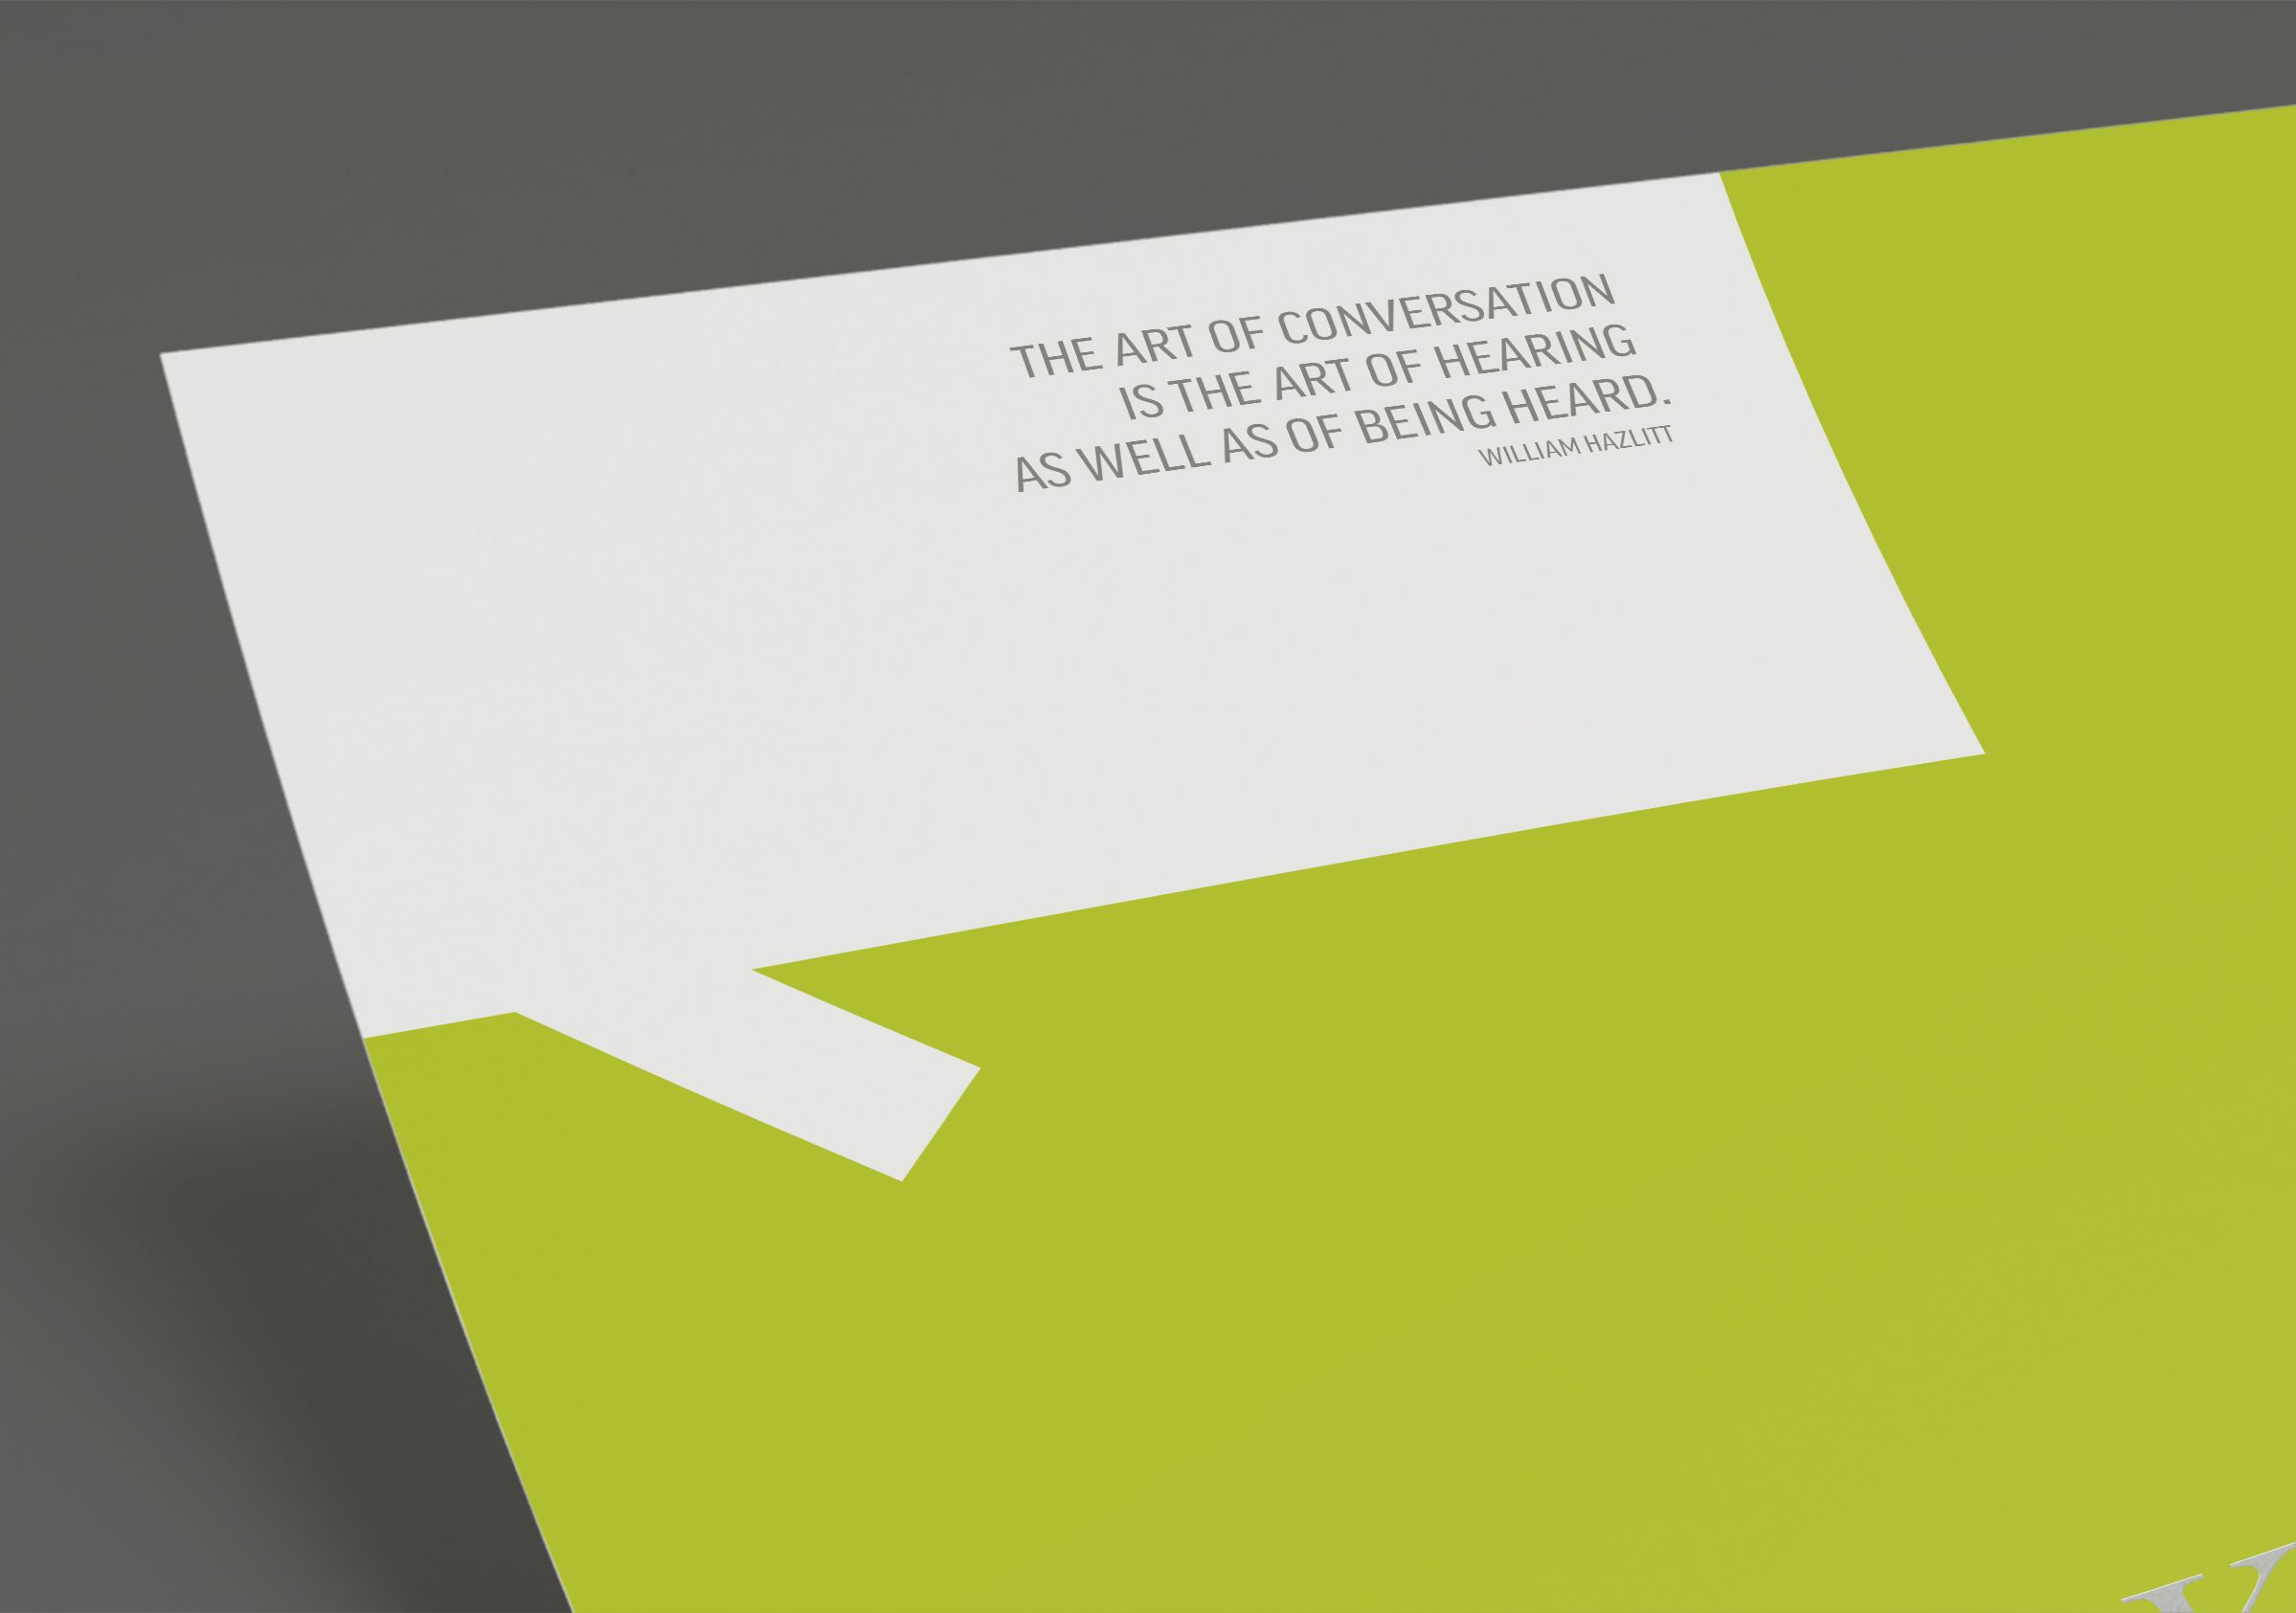 Letterhead detail for N45 Architecture Inc., architects by Graphic Designer idApostle